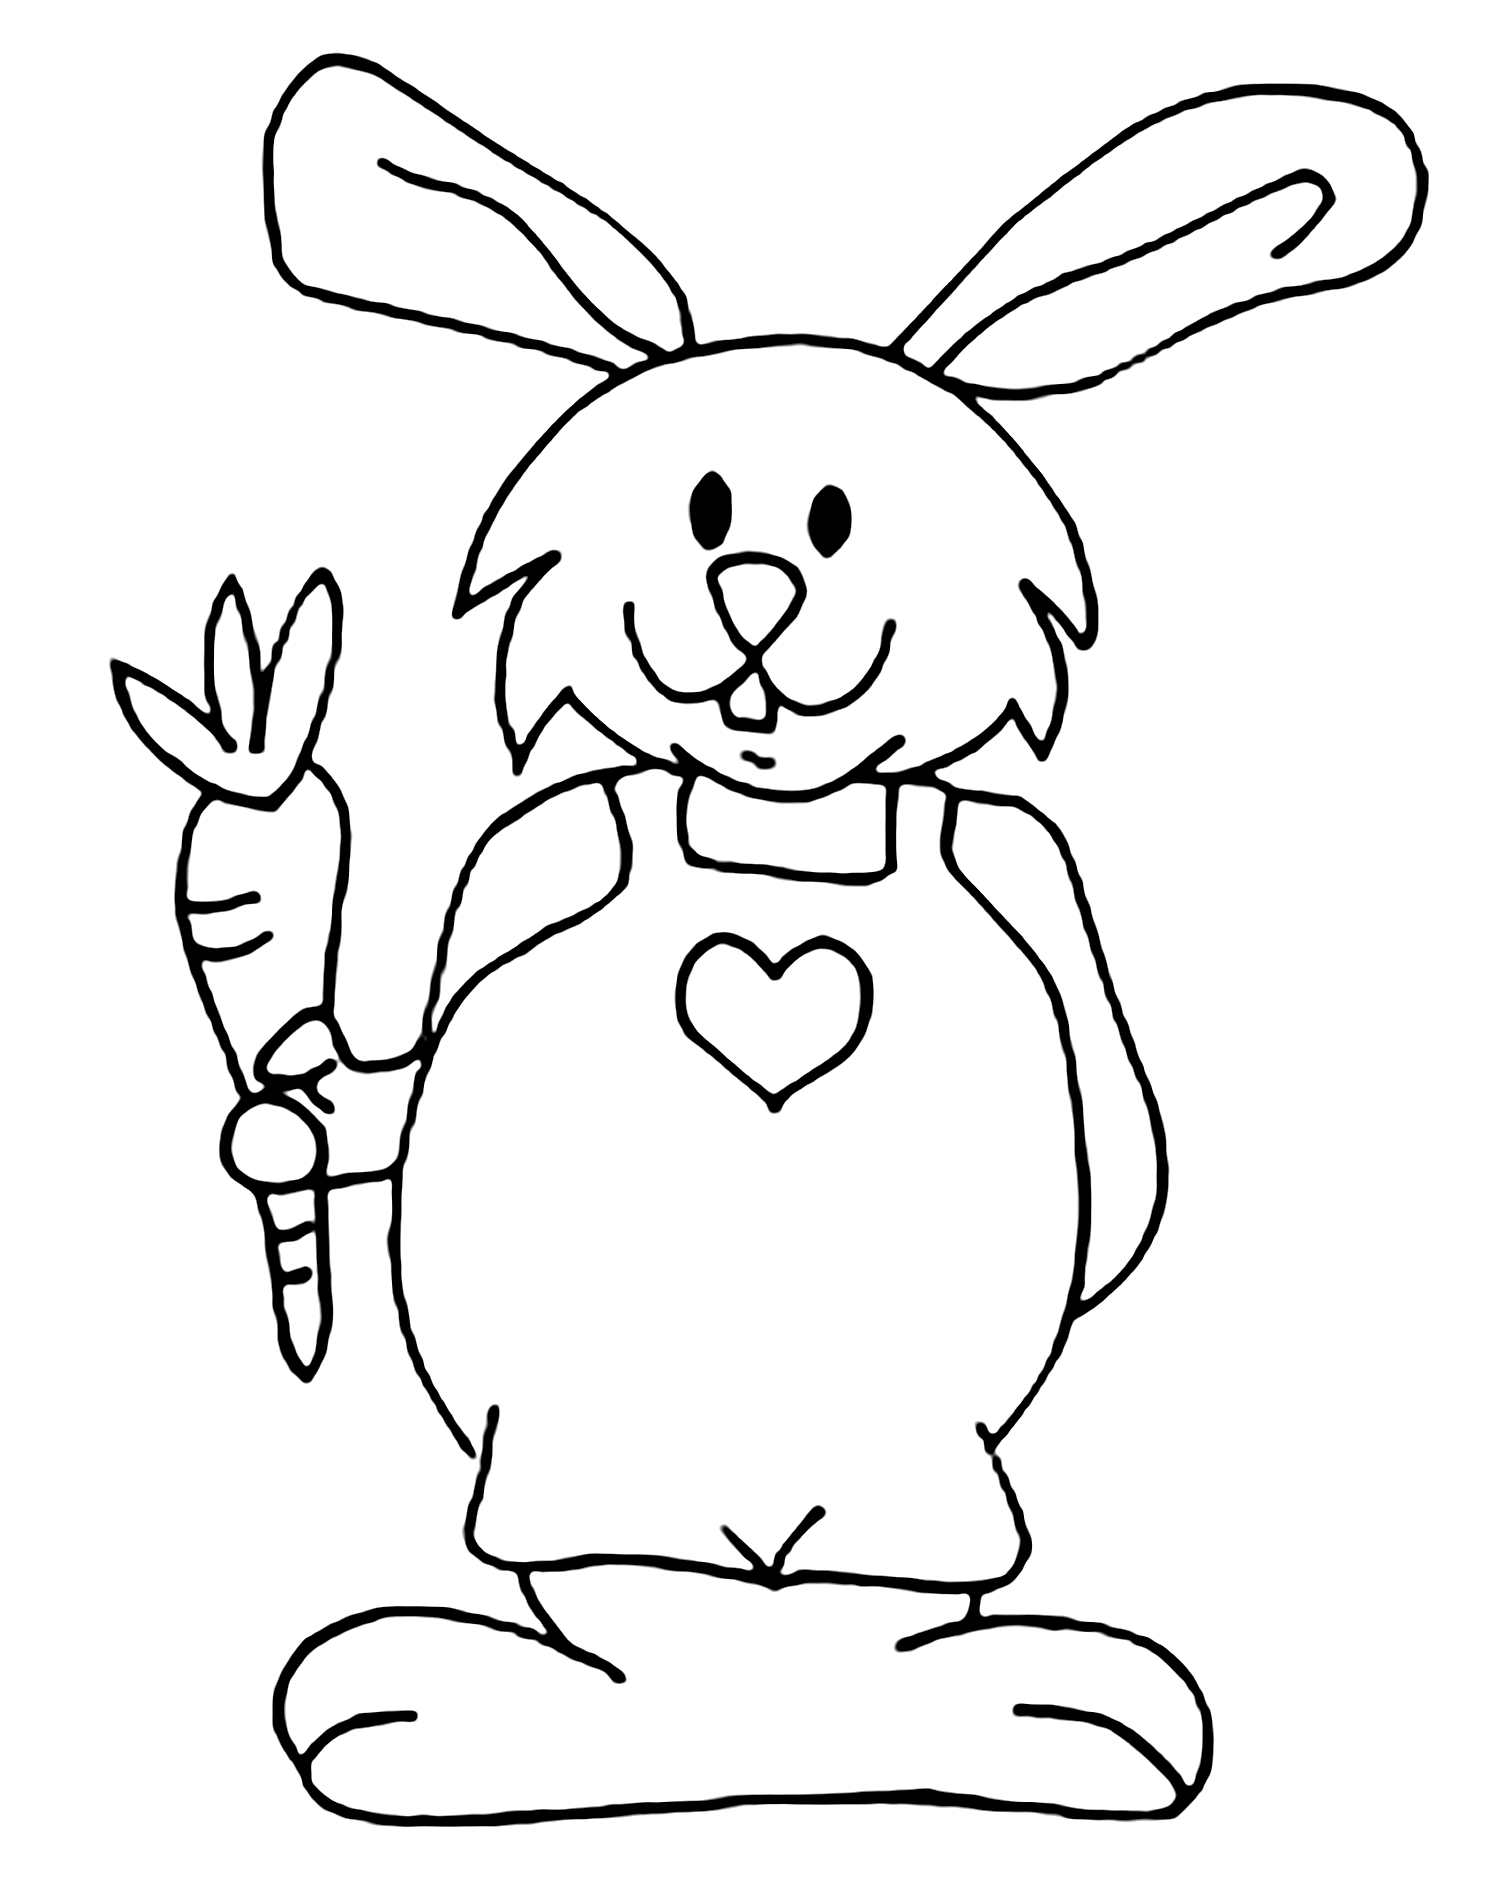 rabbit coloring pictures rabbits coloring pages download and print rabbits coloring rabbit pictures